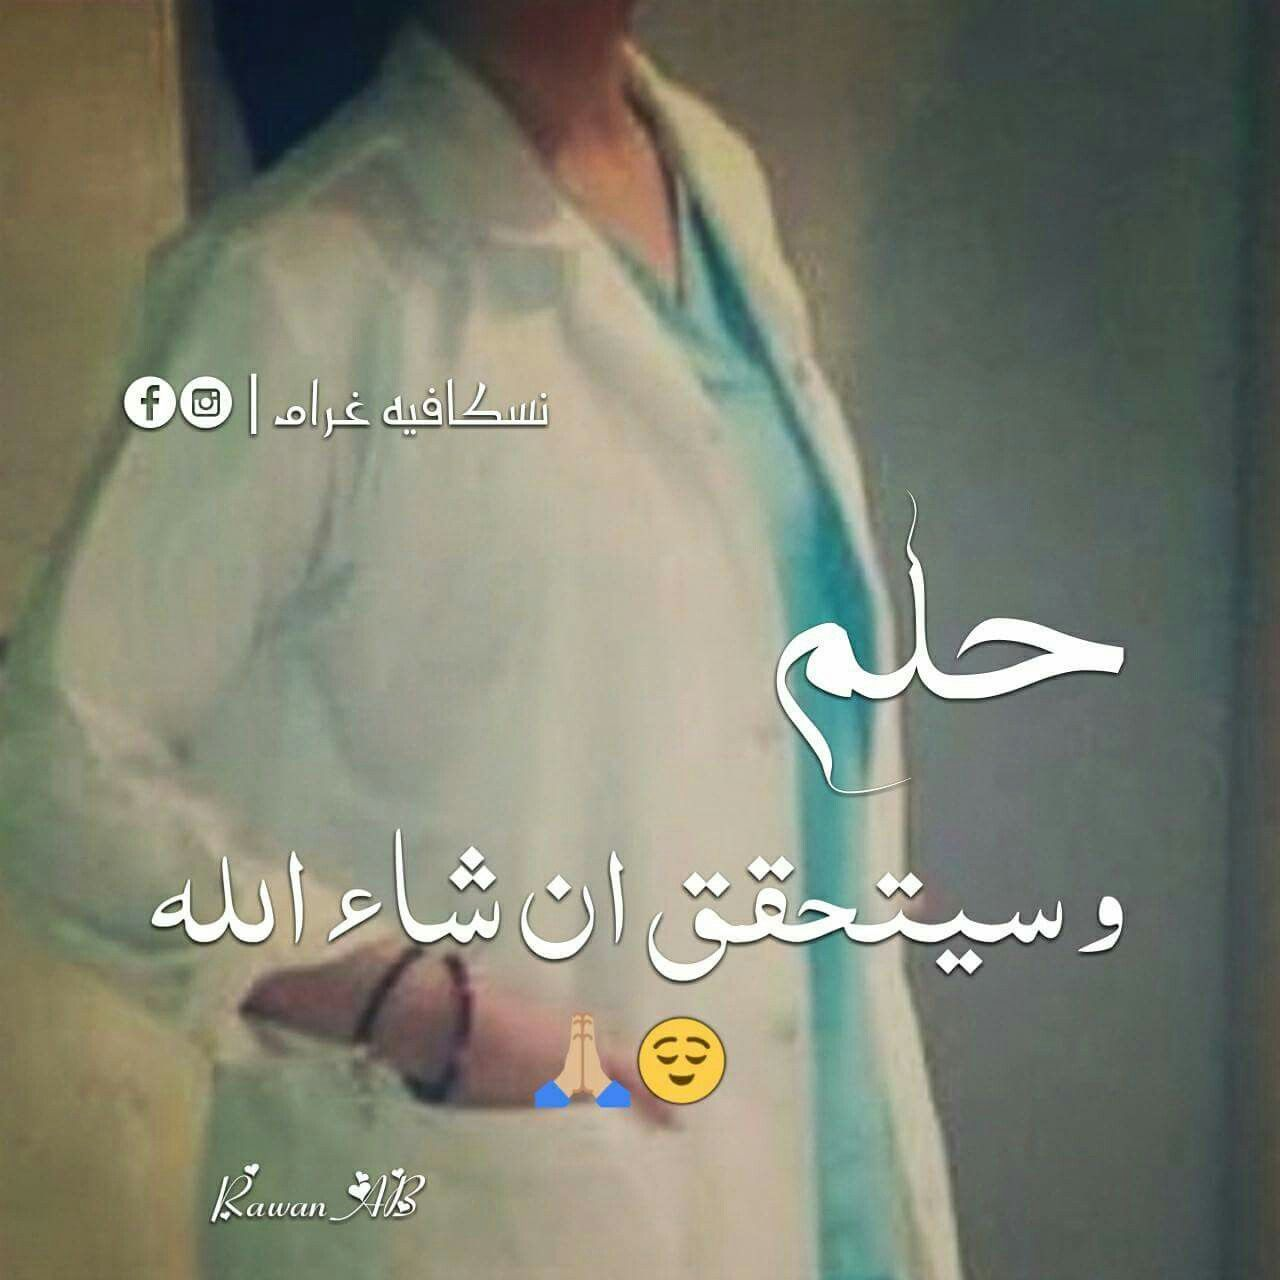 Pin By Sara Muosa On يوميات مهبولة Instagram Words Doctor Quotes Medical Medical School Inspiration